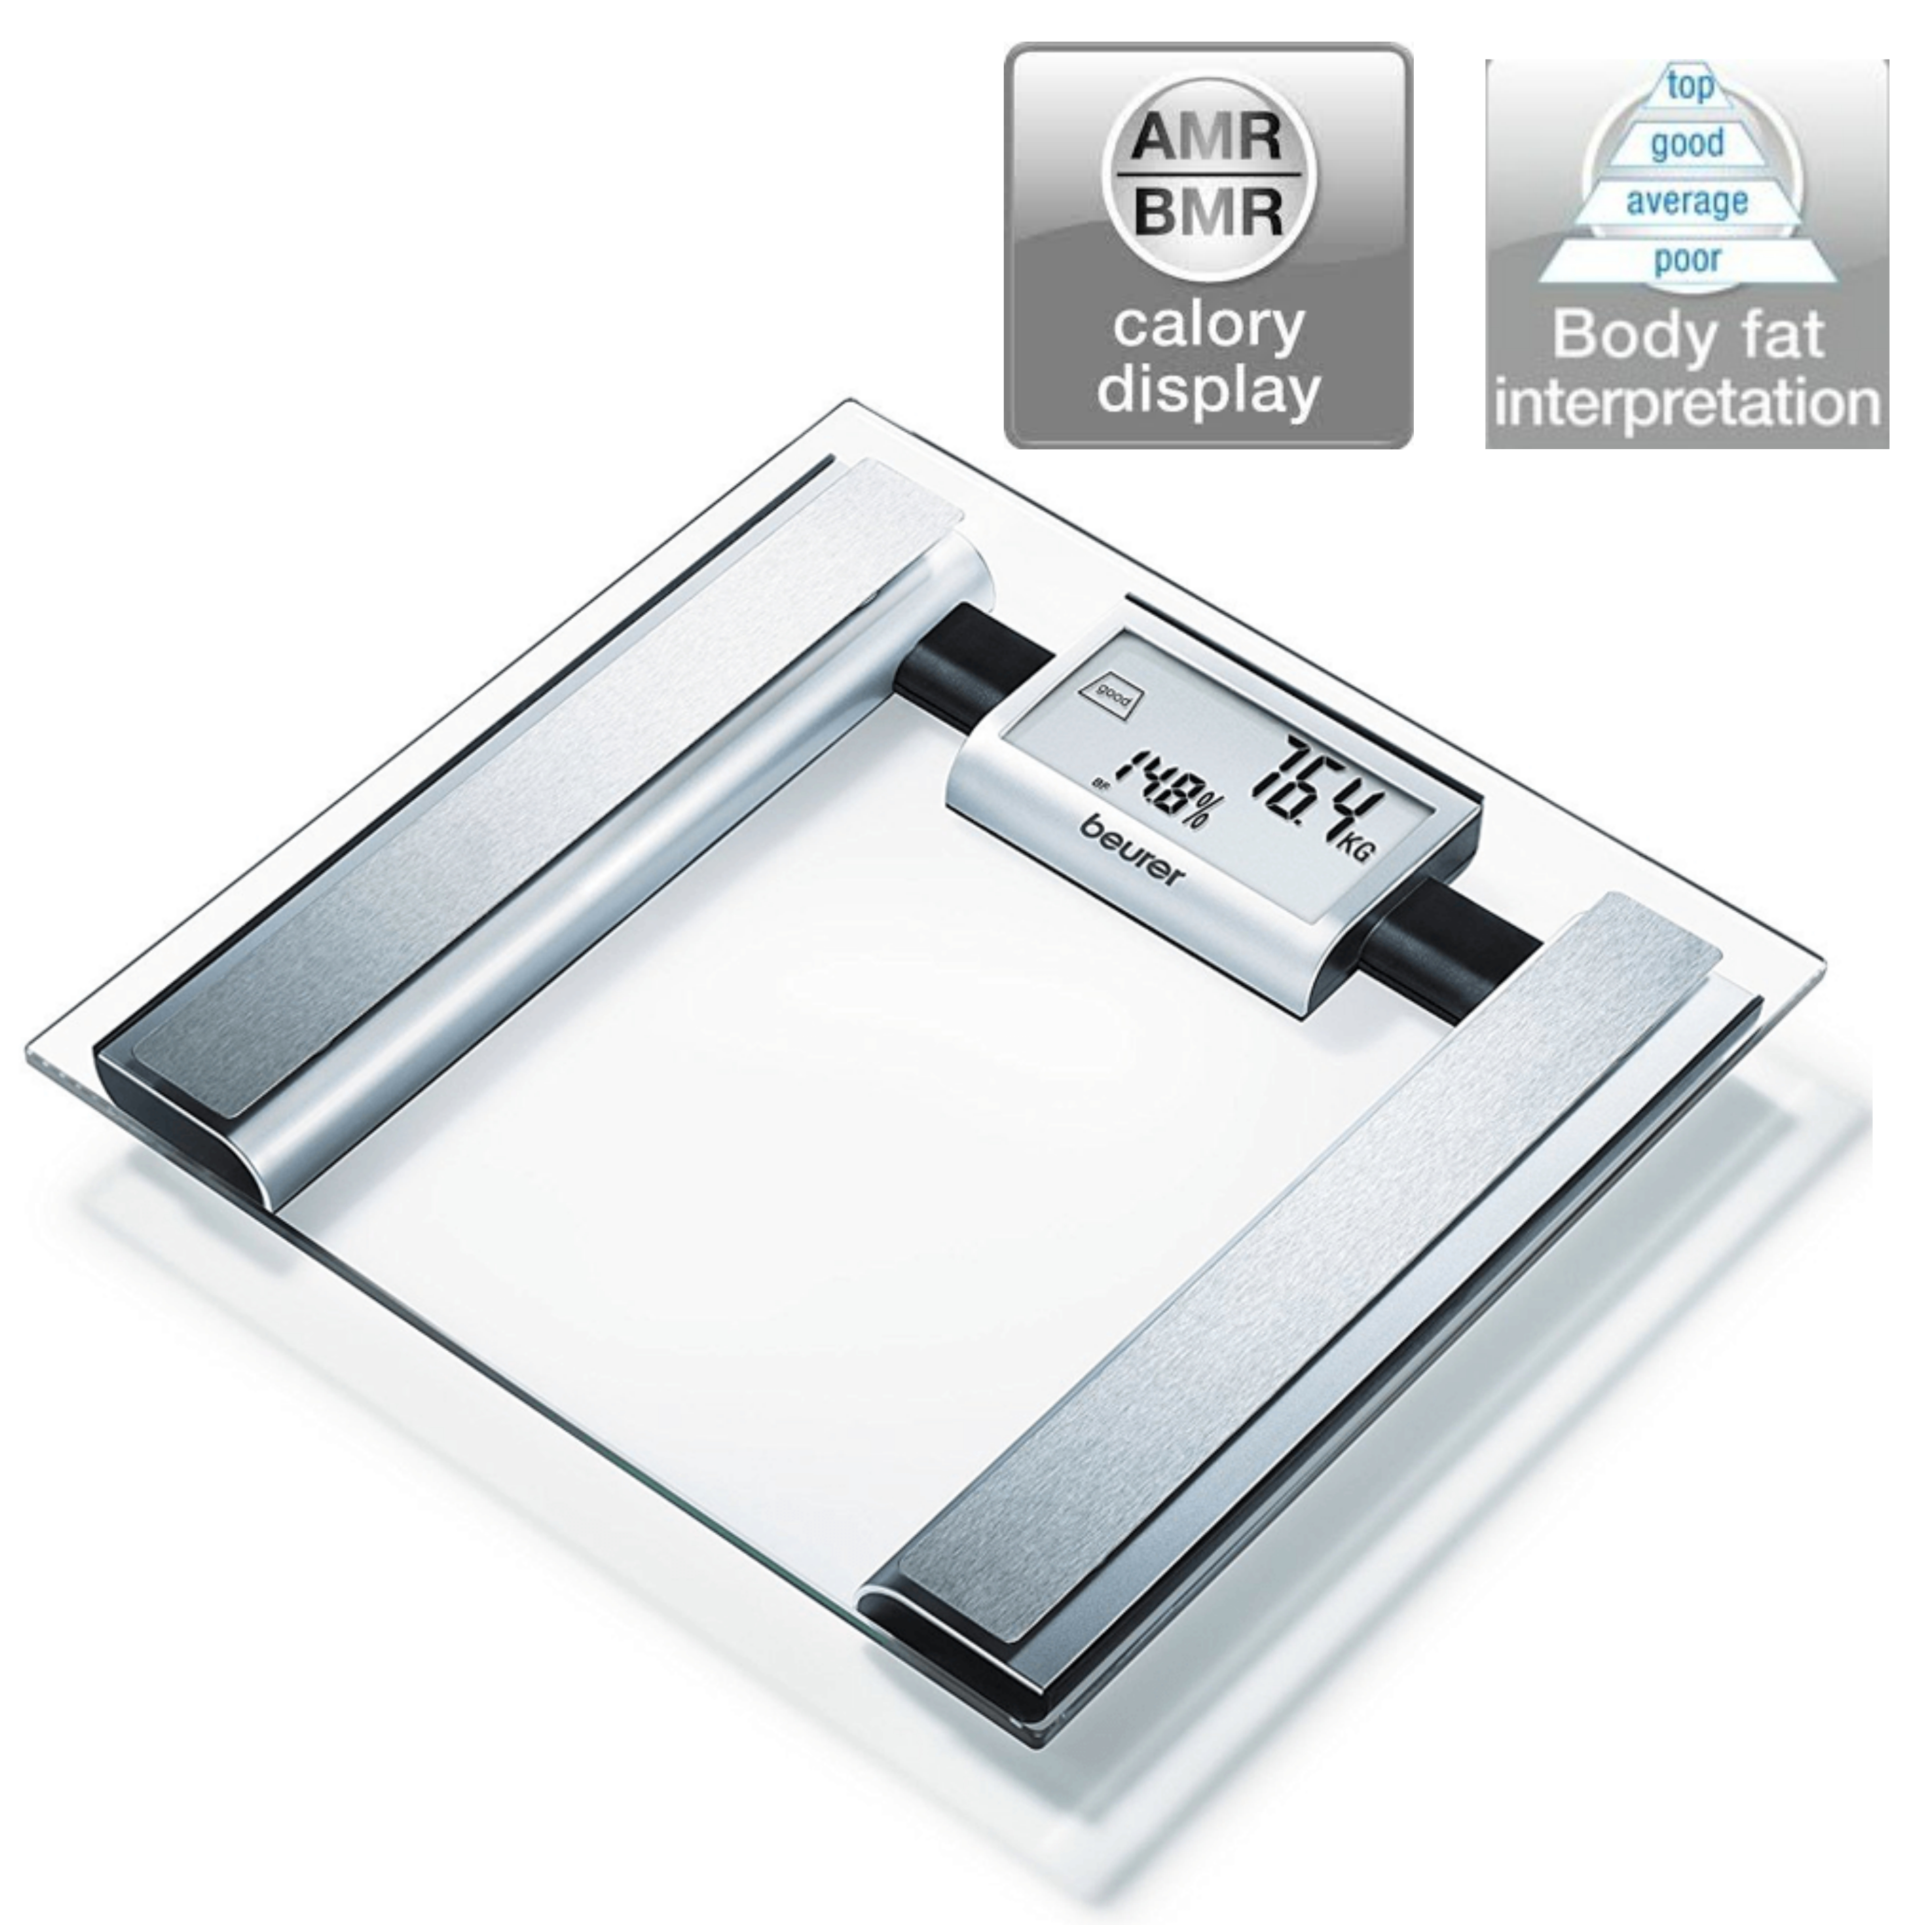 Beurer BG39 Glass Diagnostic Bathroom Scale|Large Digital Display|BMR+AMR|BF|New